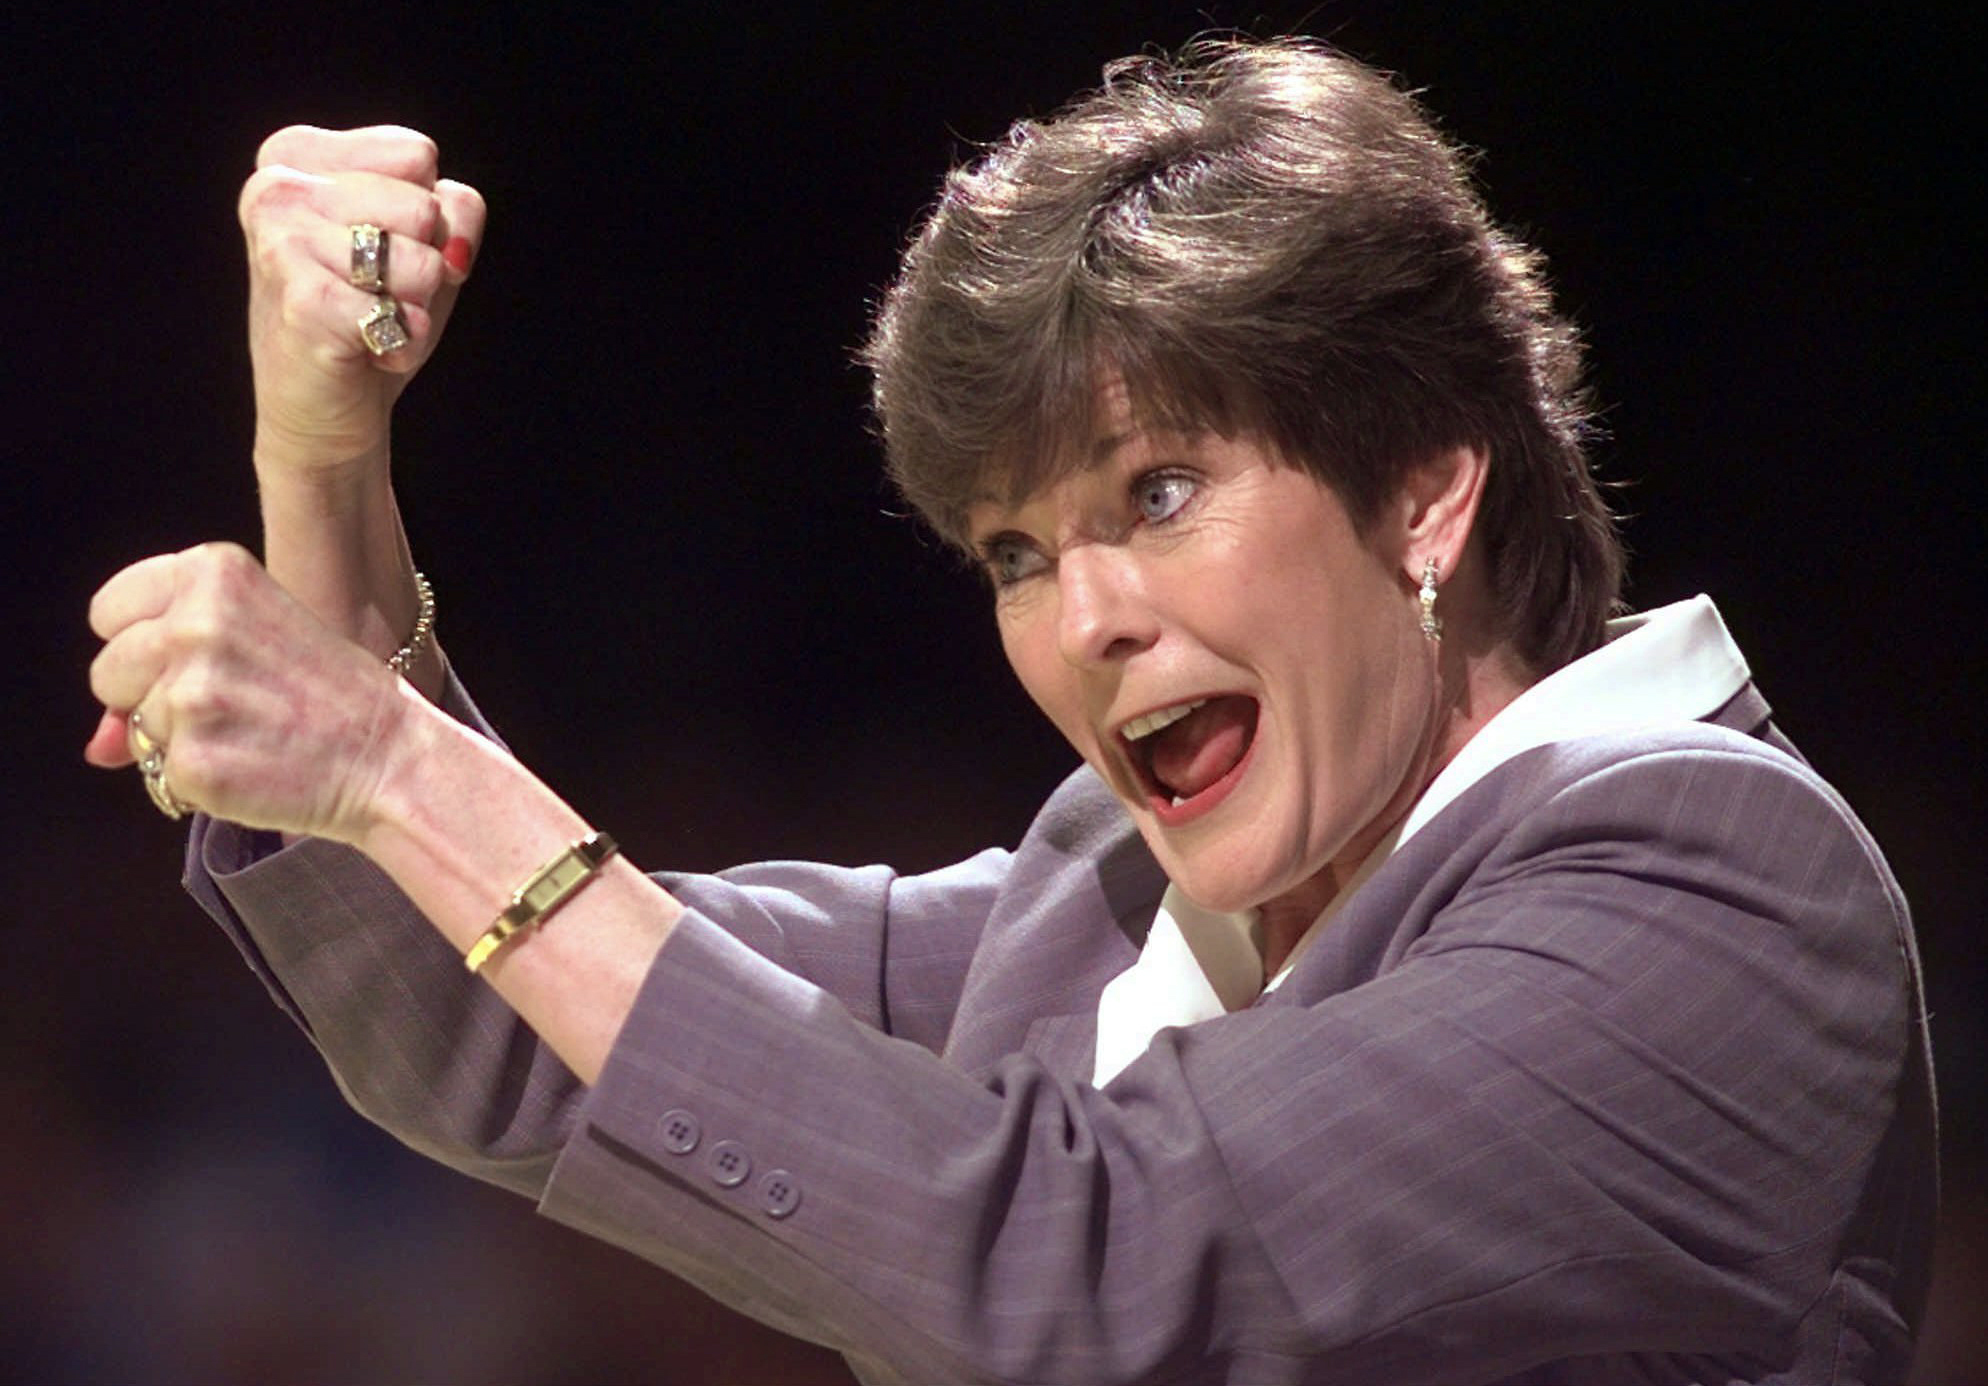 FILE - In this March 21, 1998, file photo, Tennessee coach Pat Summitt signals to her players in the second half of an NCAA college basketball game against Rutgers at the NCAA Women's Mideast Regional in Nashville, Tenn. Her stare could crack steel. Her a